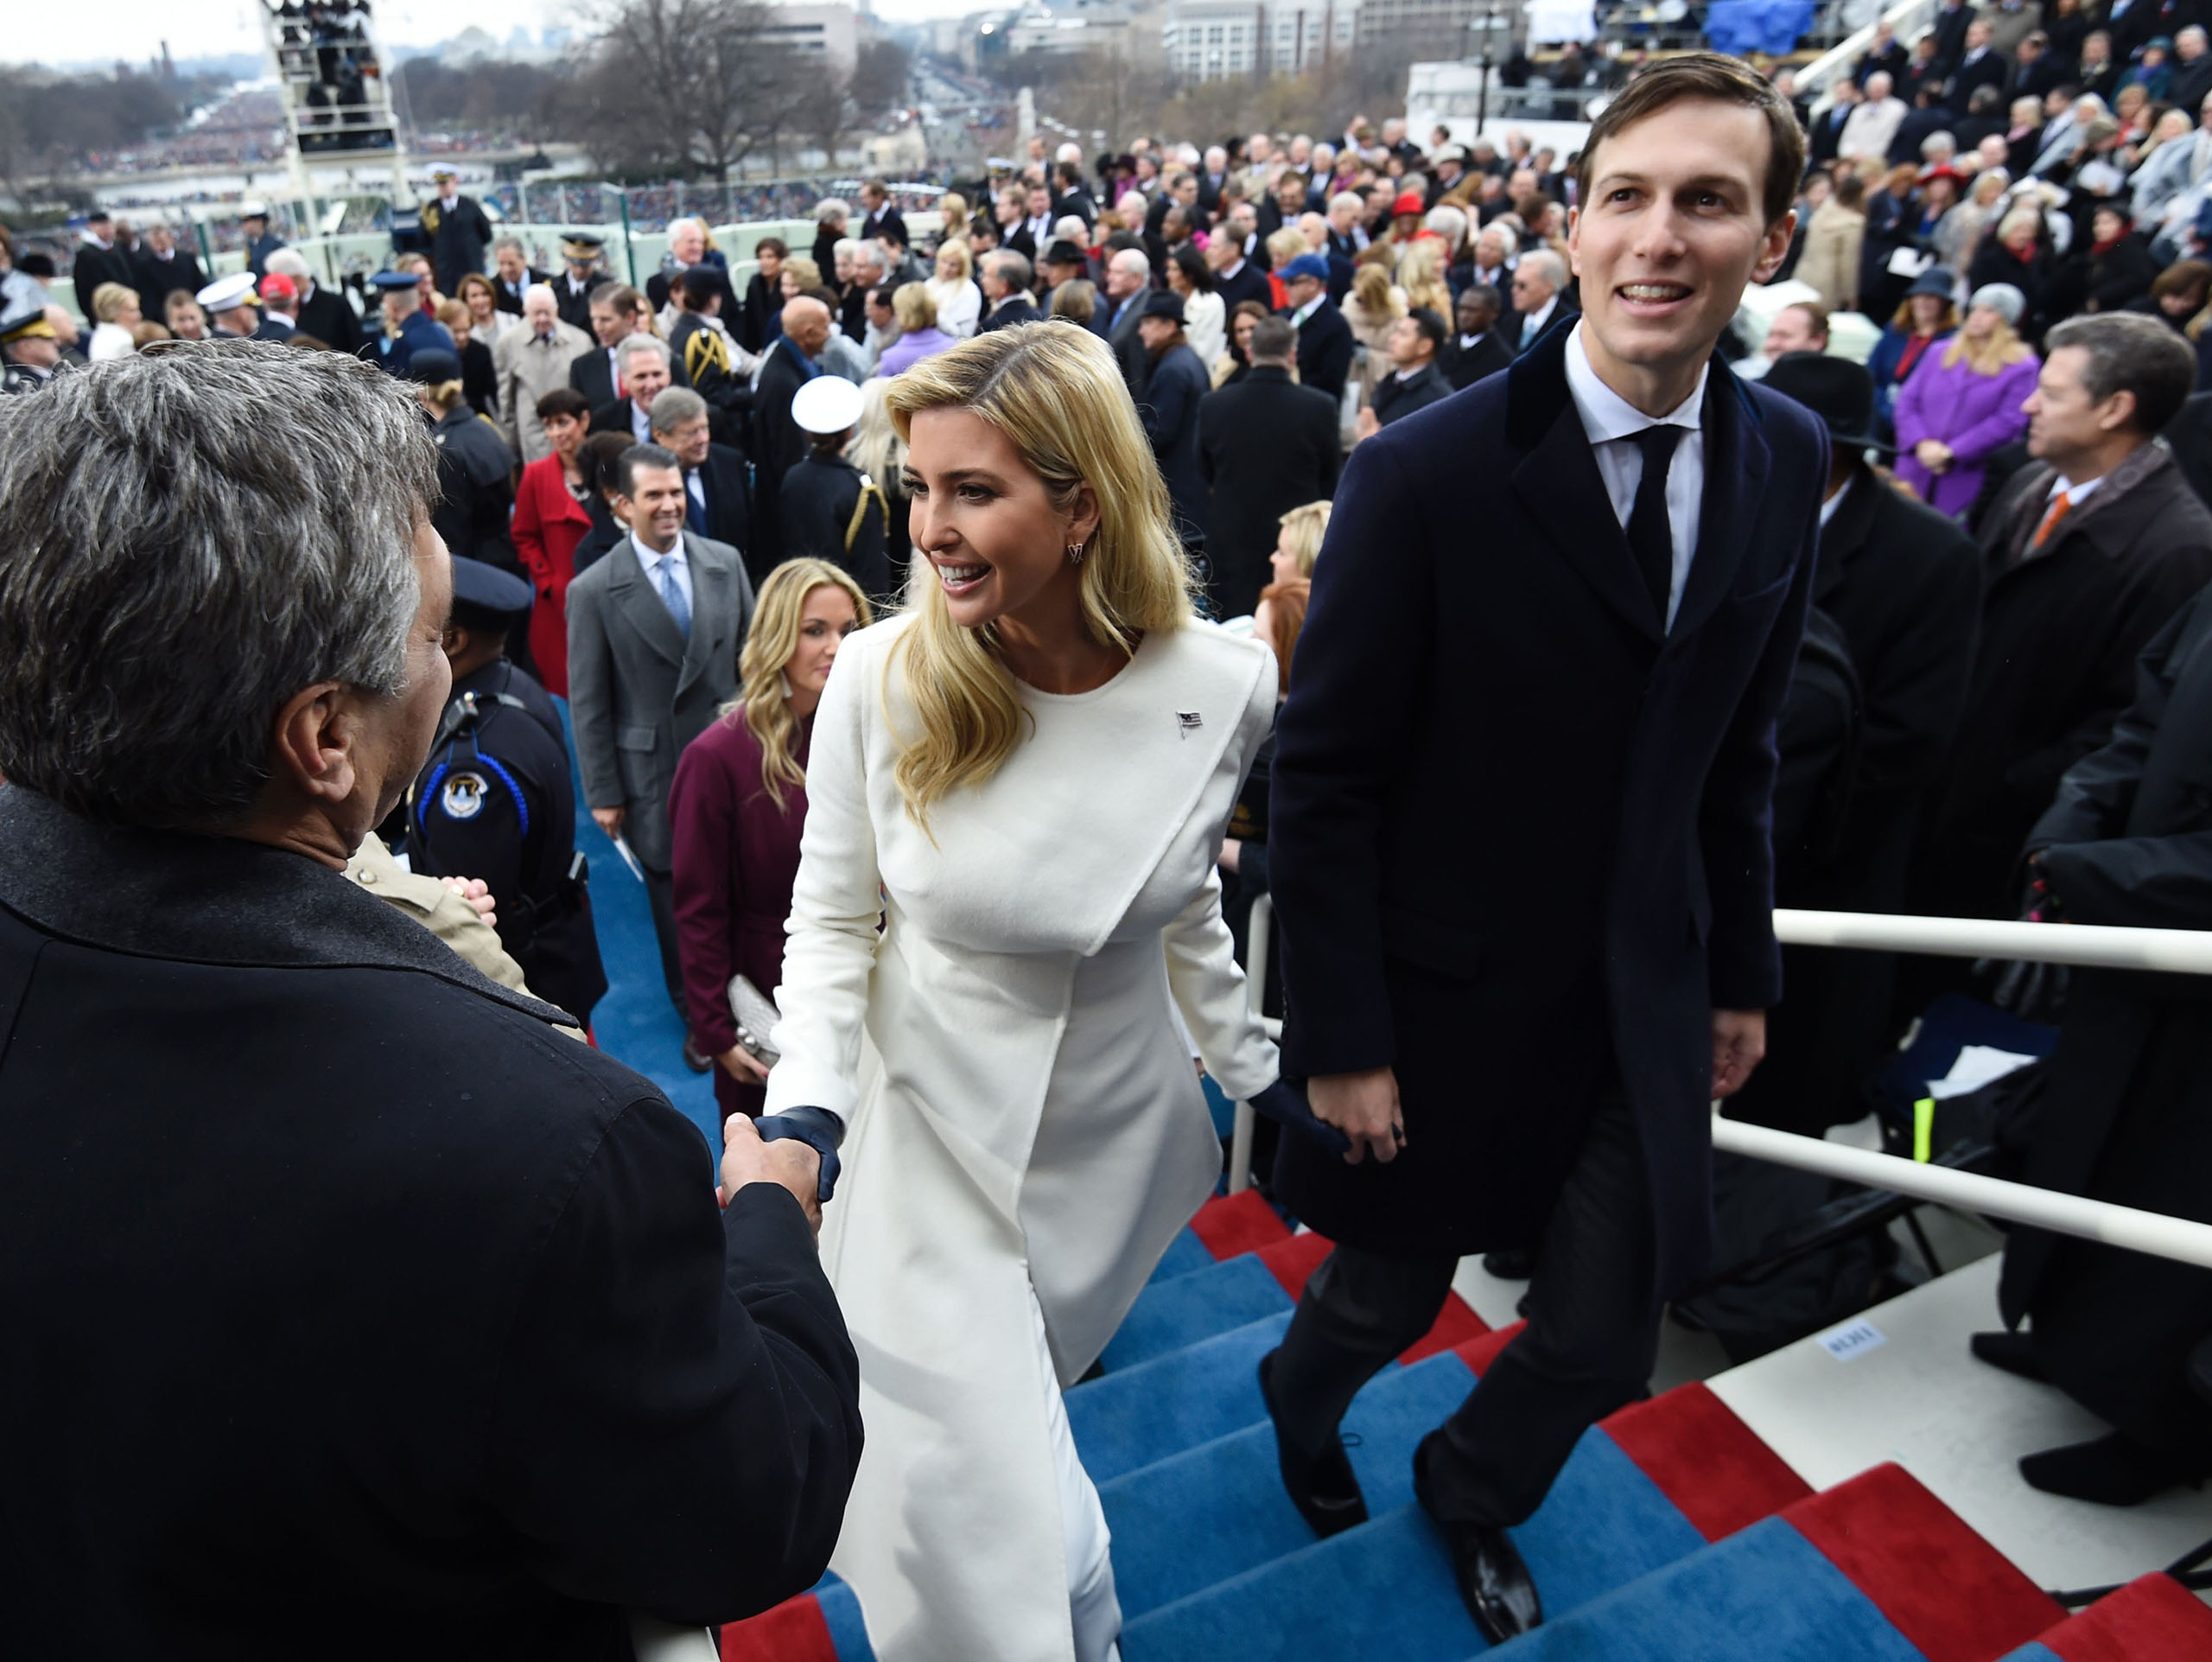 Ivanka Trump and husband Jared Kushner leave after the Presidential Inauguration at the US Capitol in Washington, D.C., Jan. 20, 2017.